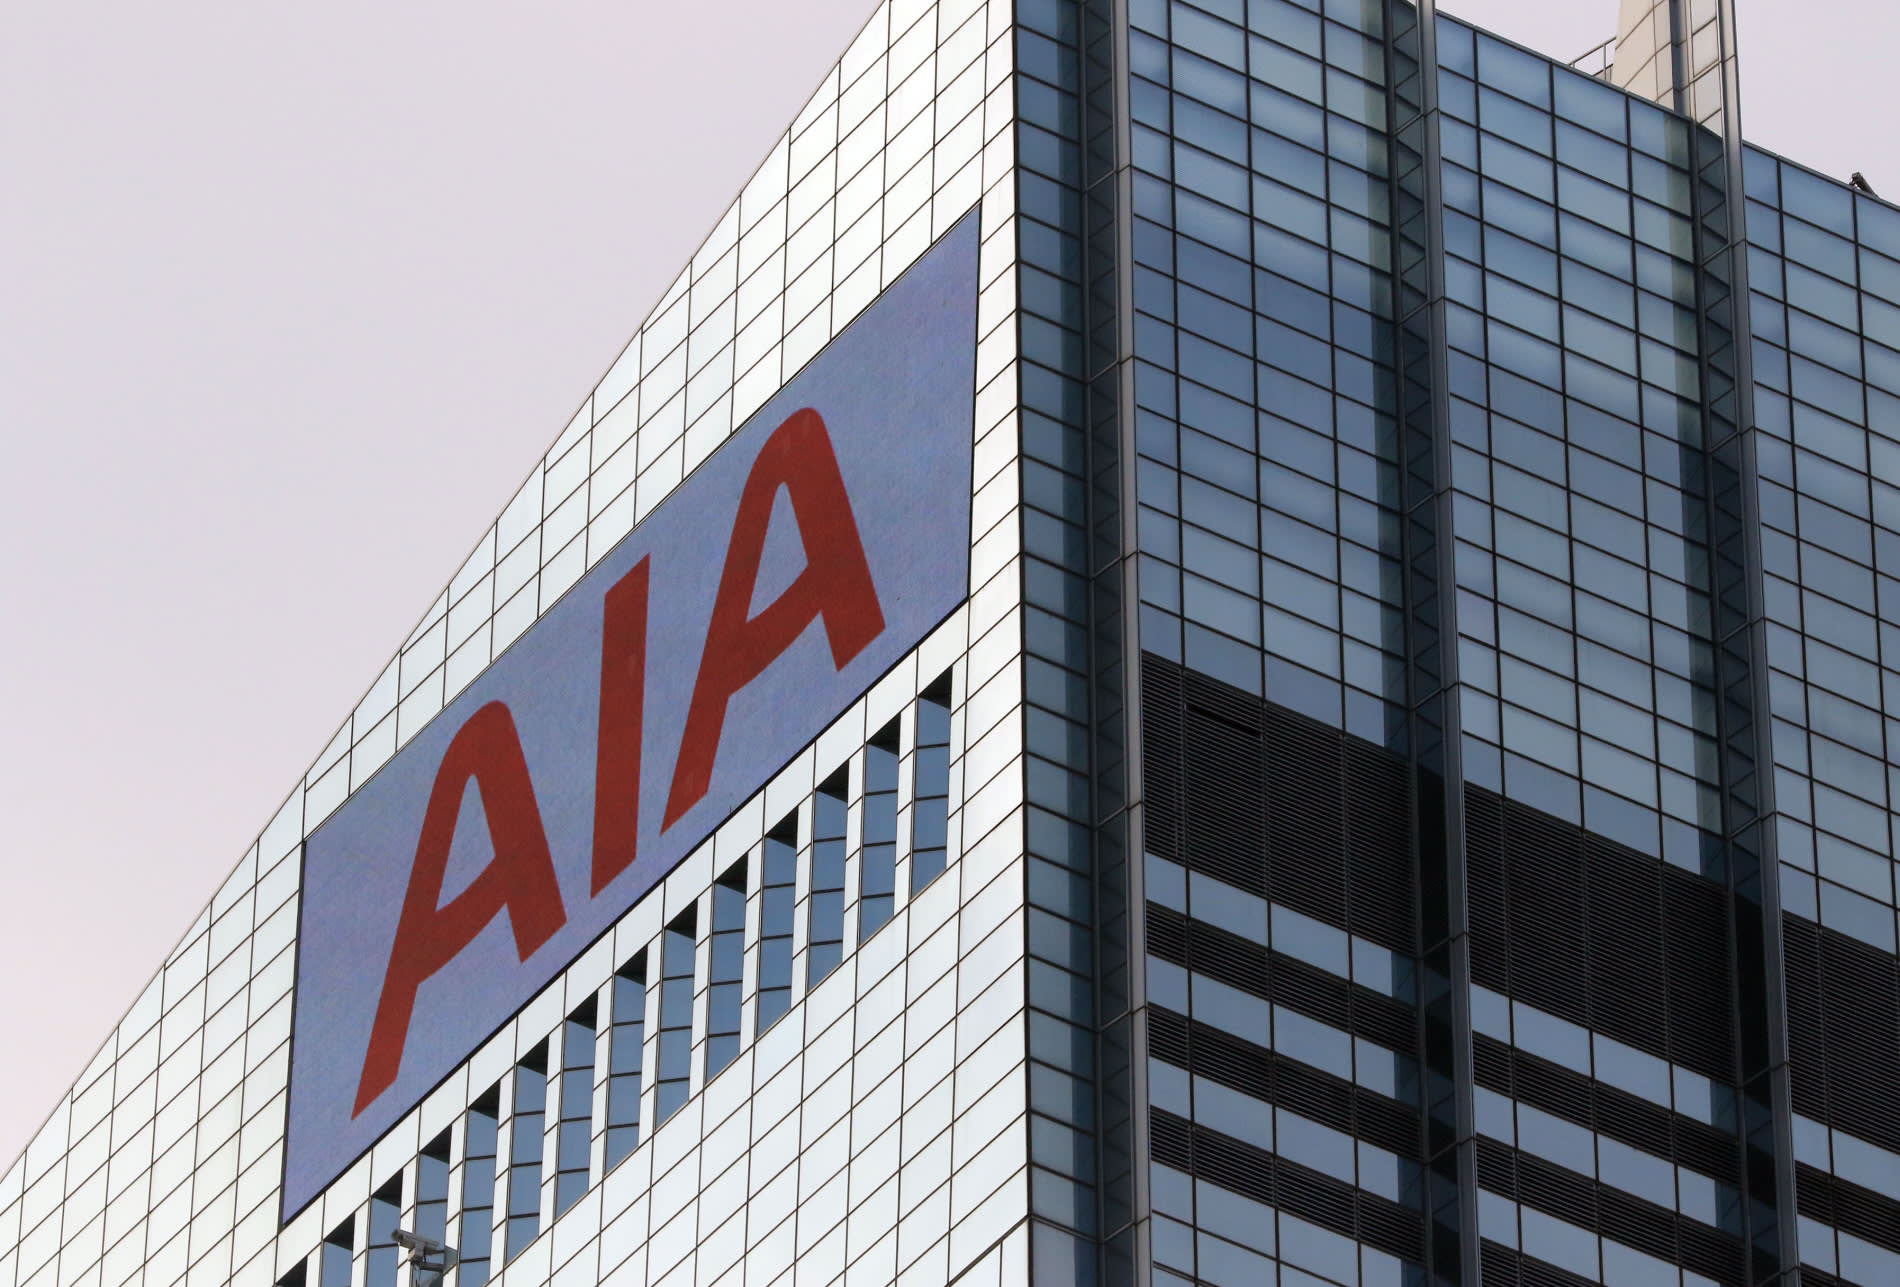 AIA CEO Tucker to leave for HSBC, insurer's shares head